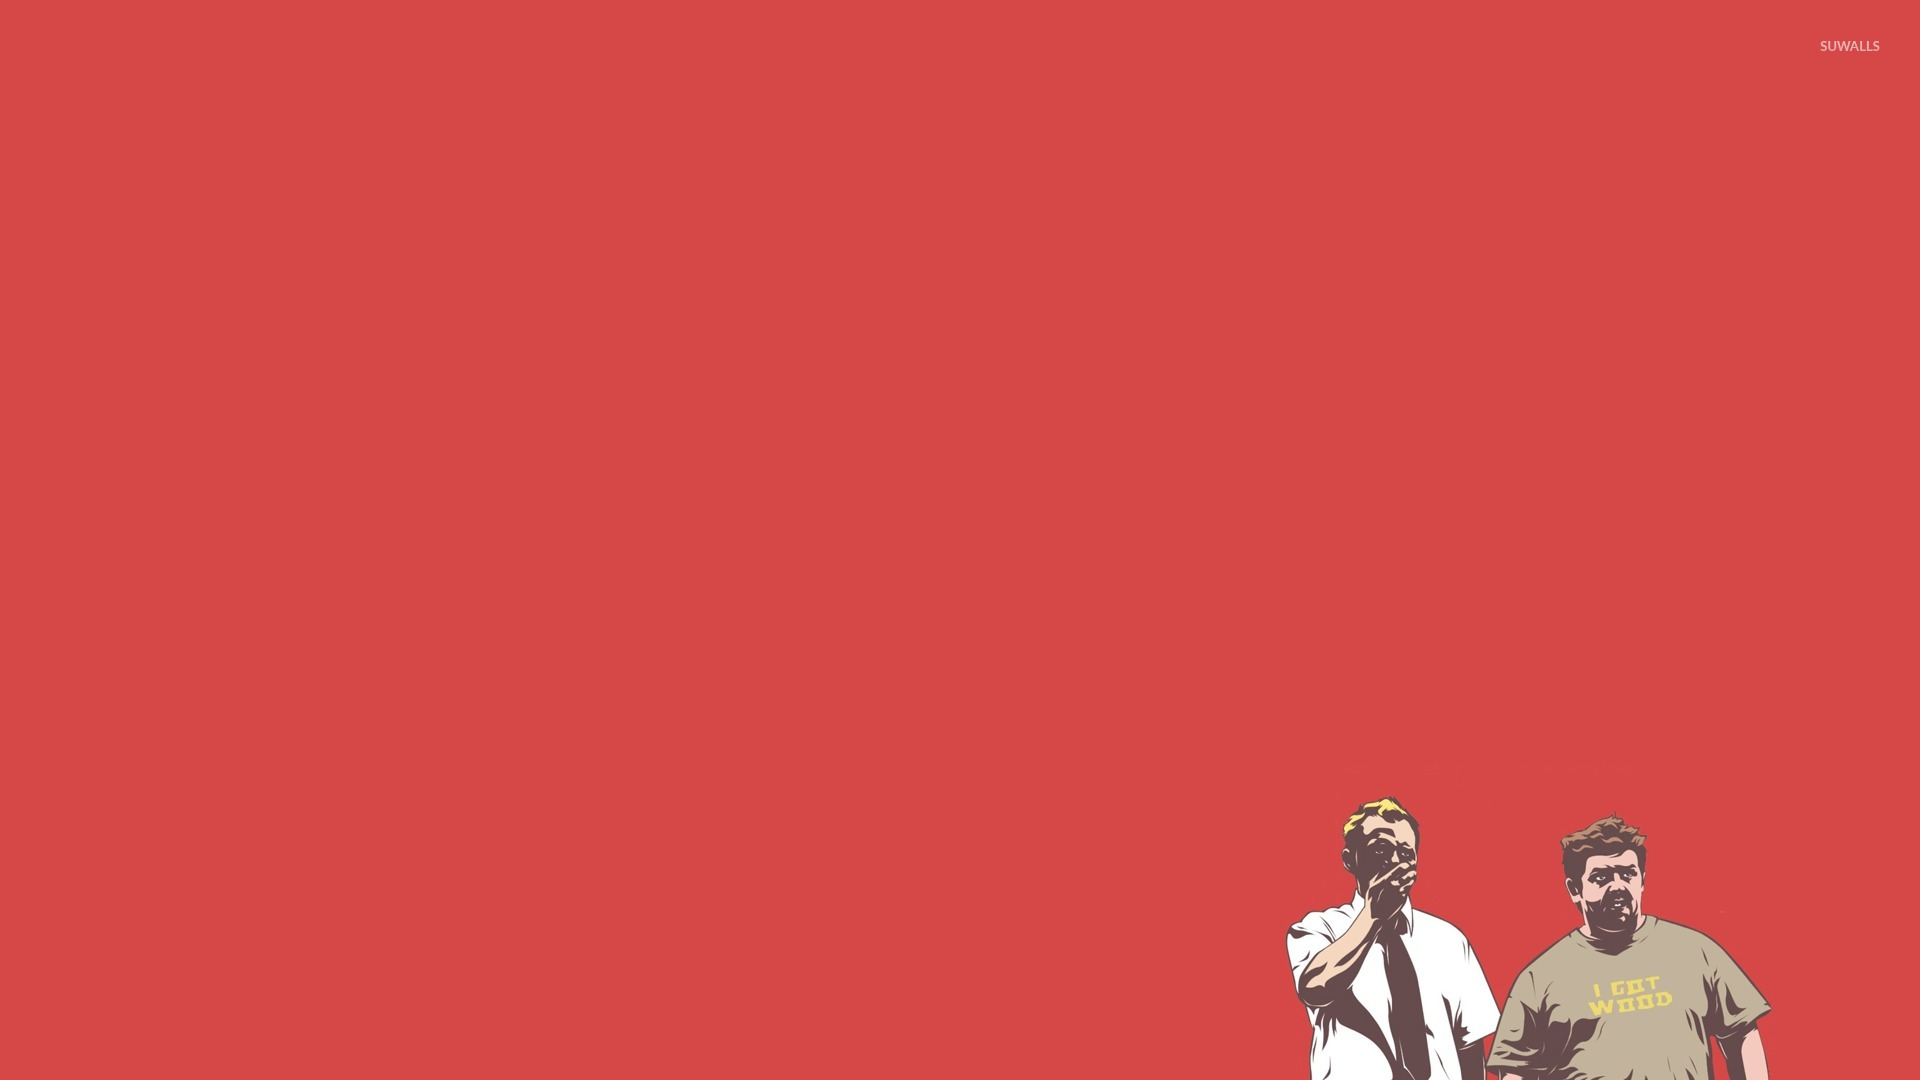 shaun of the dead wallpaper - photo #12